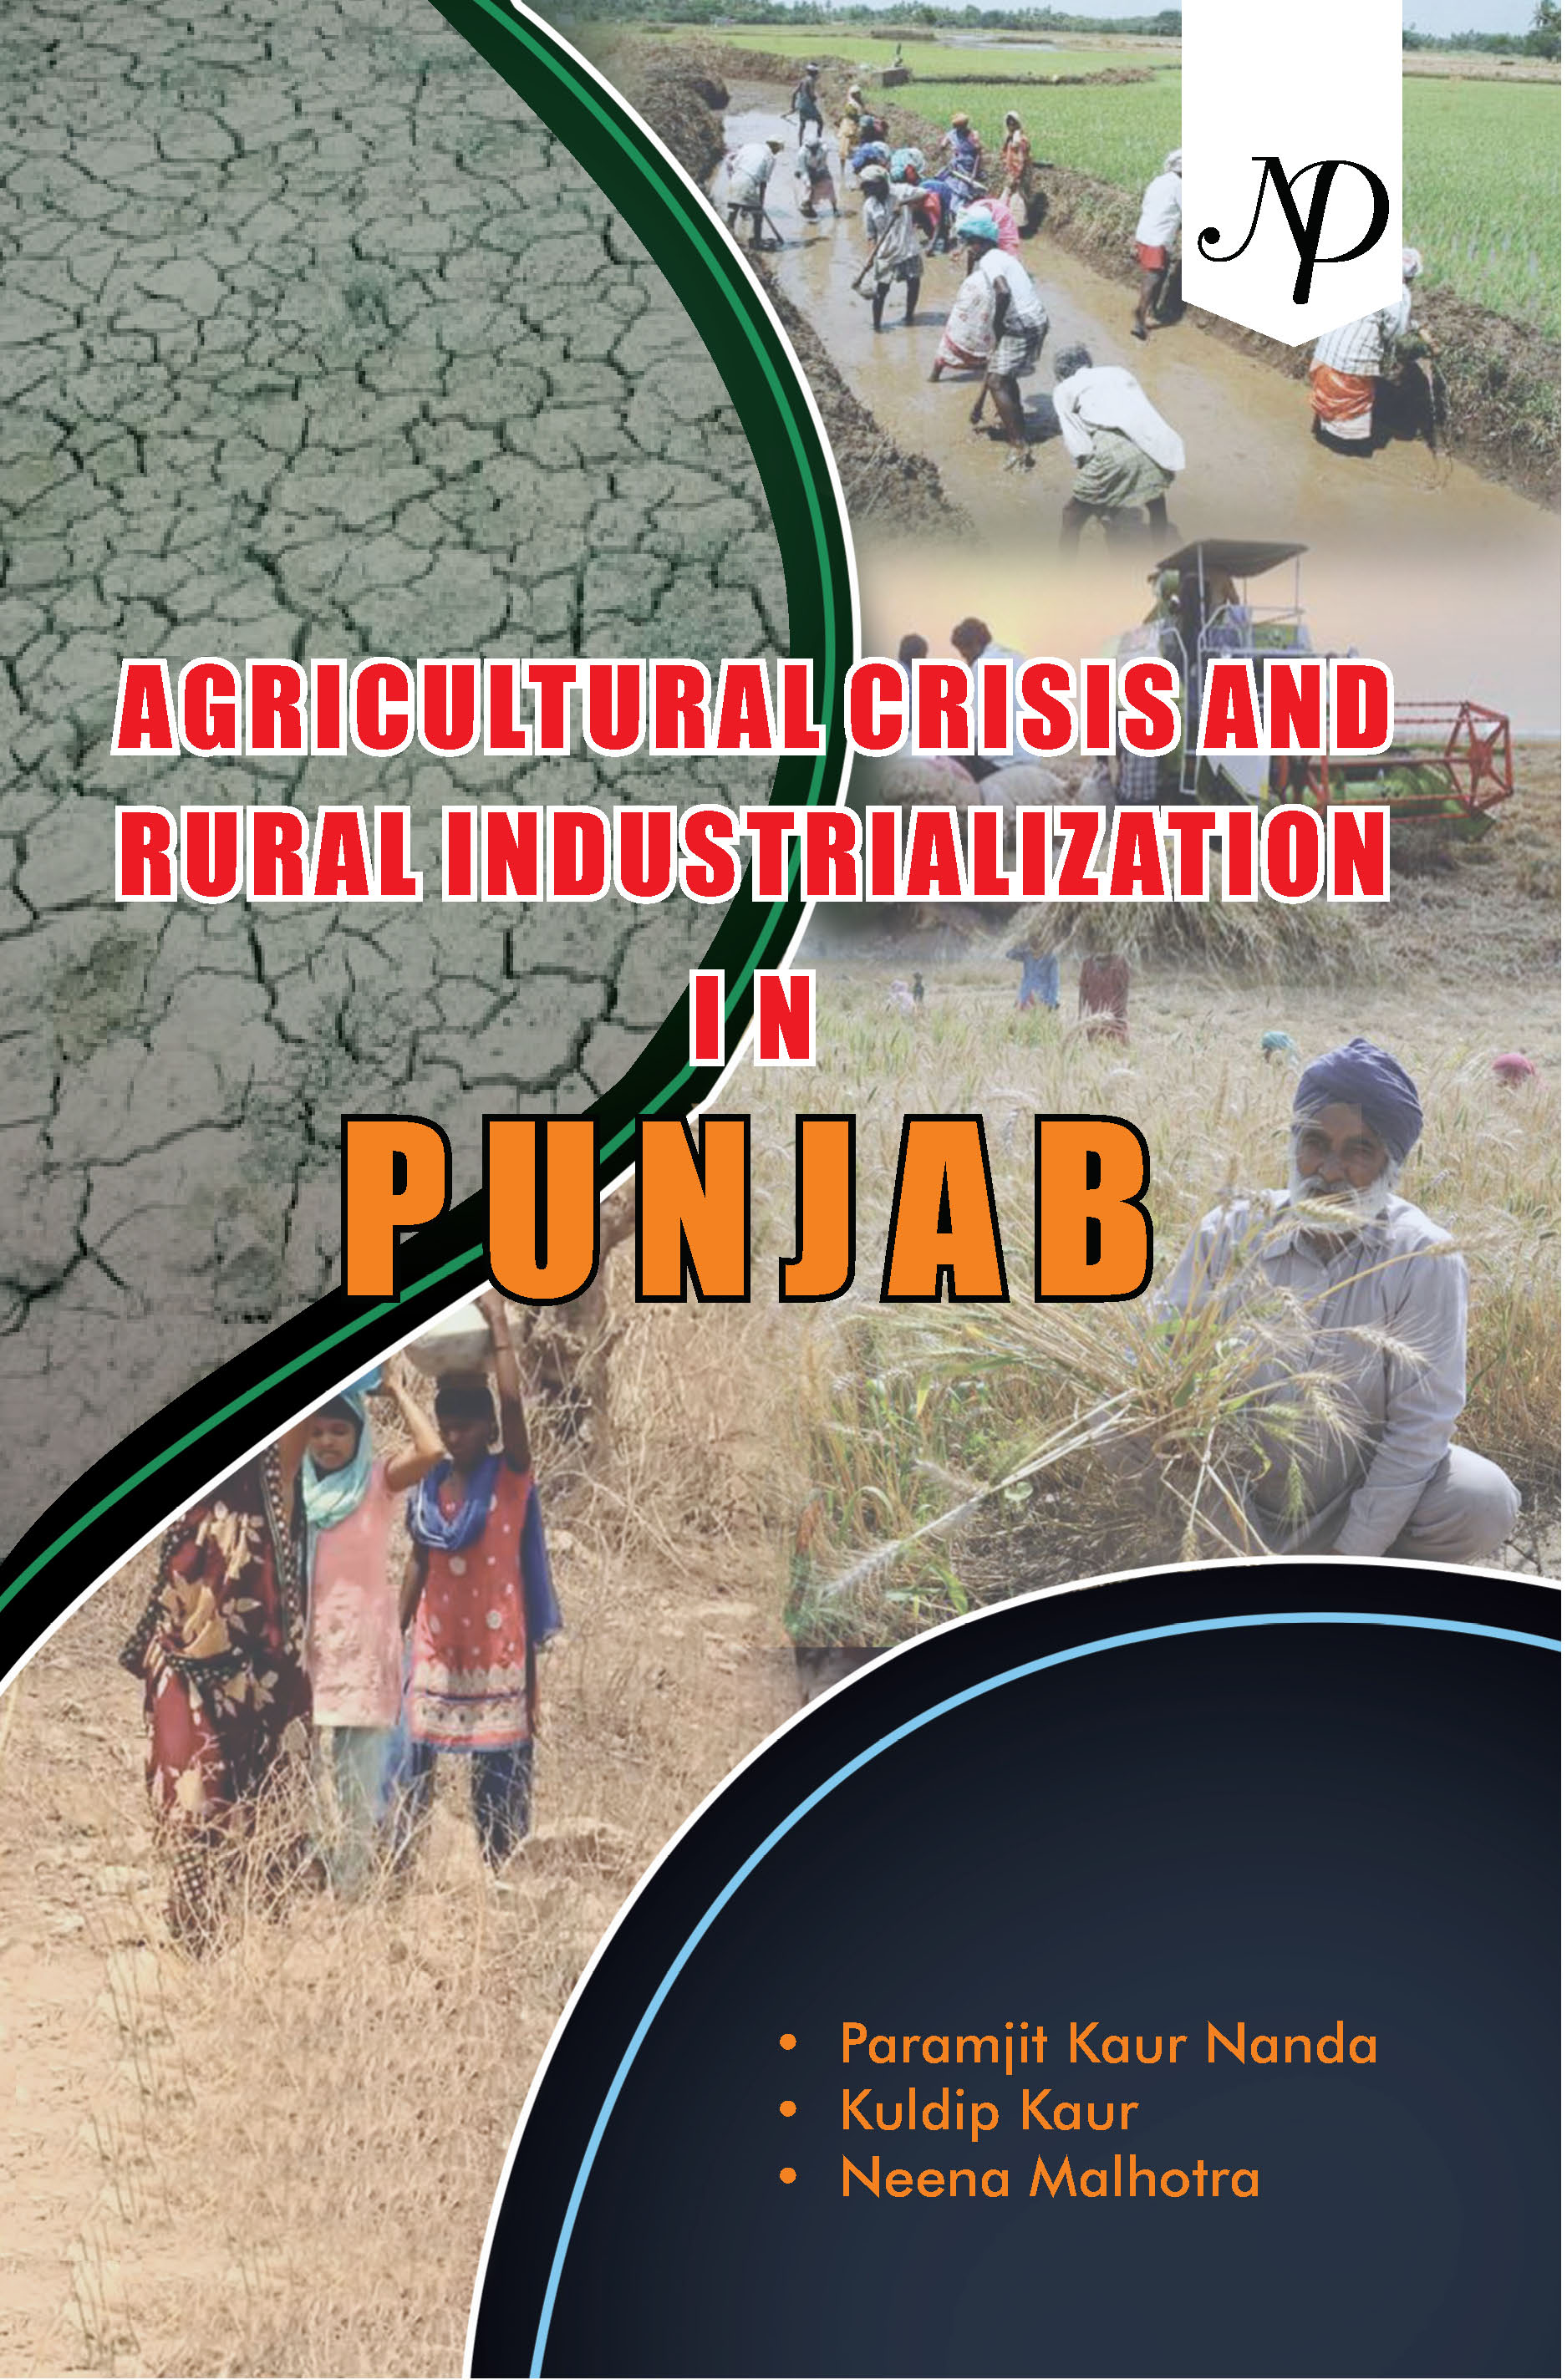 Agricultural crisis and Rural industrialization in Punjab cover.jpg